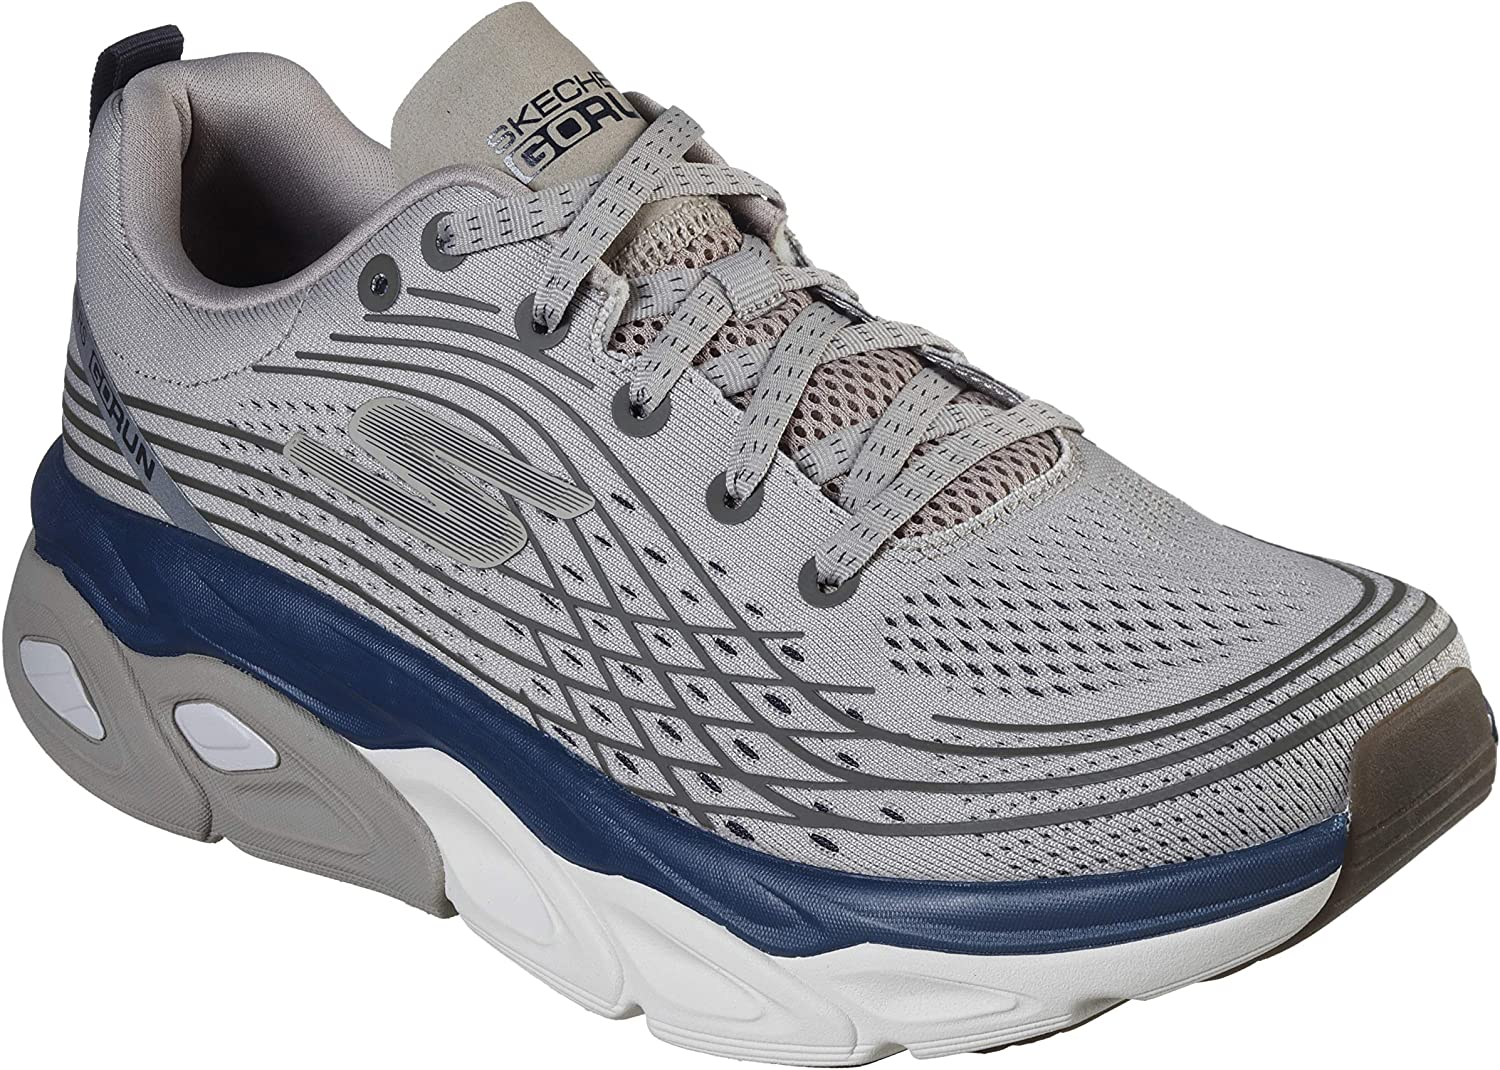 Skechers Men's Max Cushion-54440 Sneaker